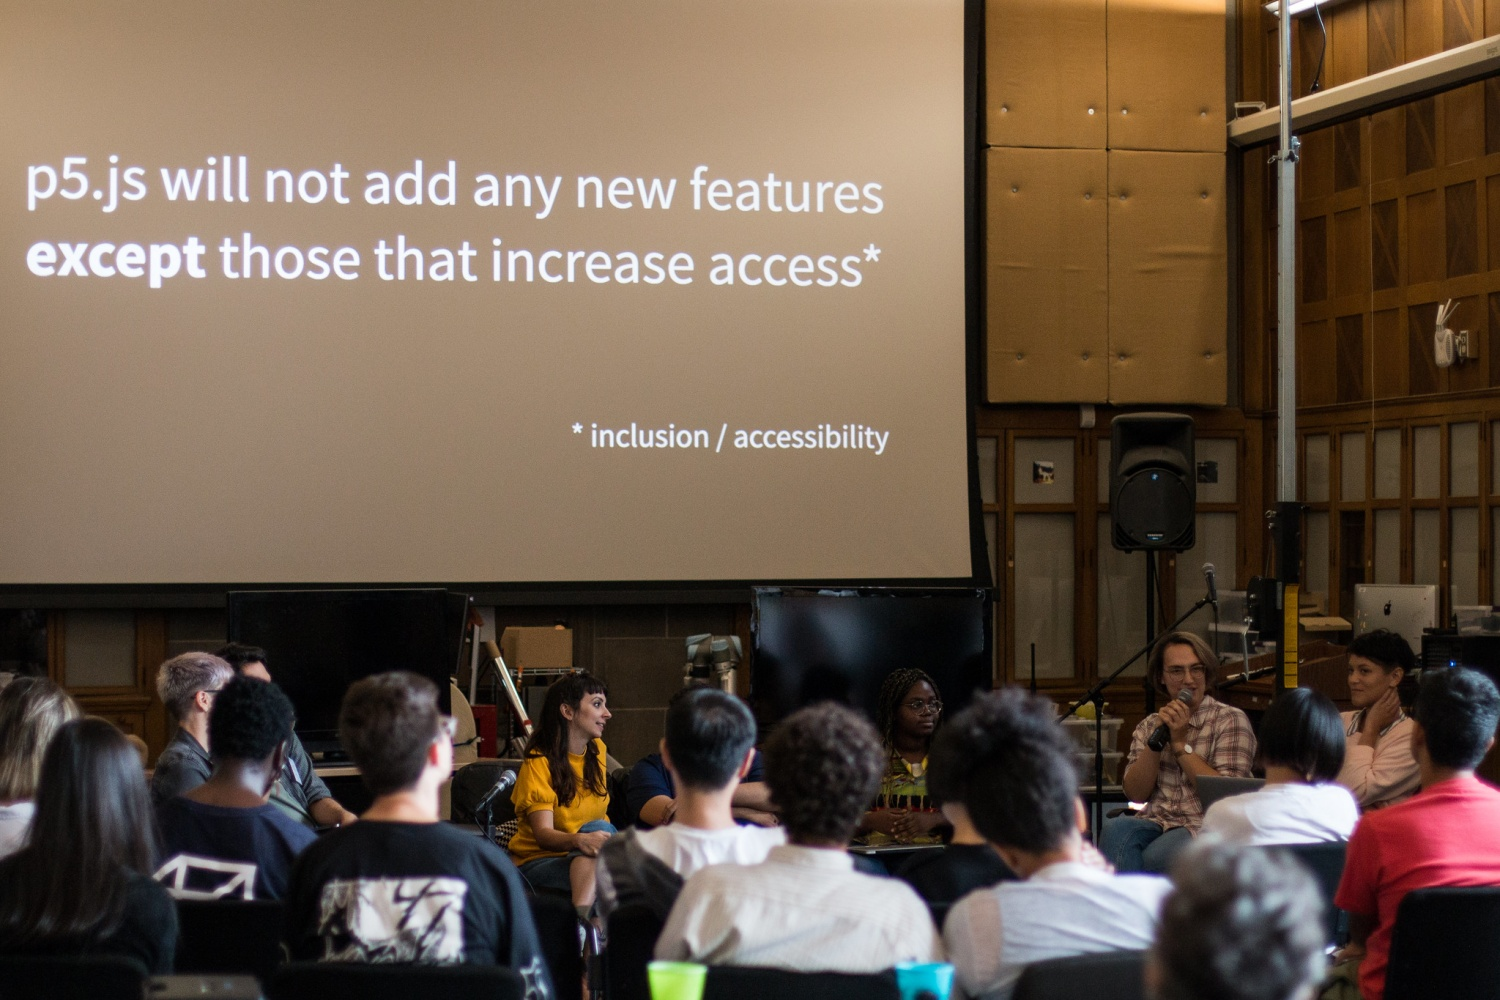 Person with a microphone speaking to fellow participants in front of text that reads p5.js will not add any new features except those that increase access